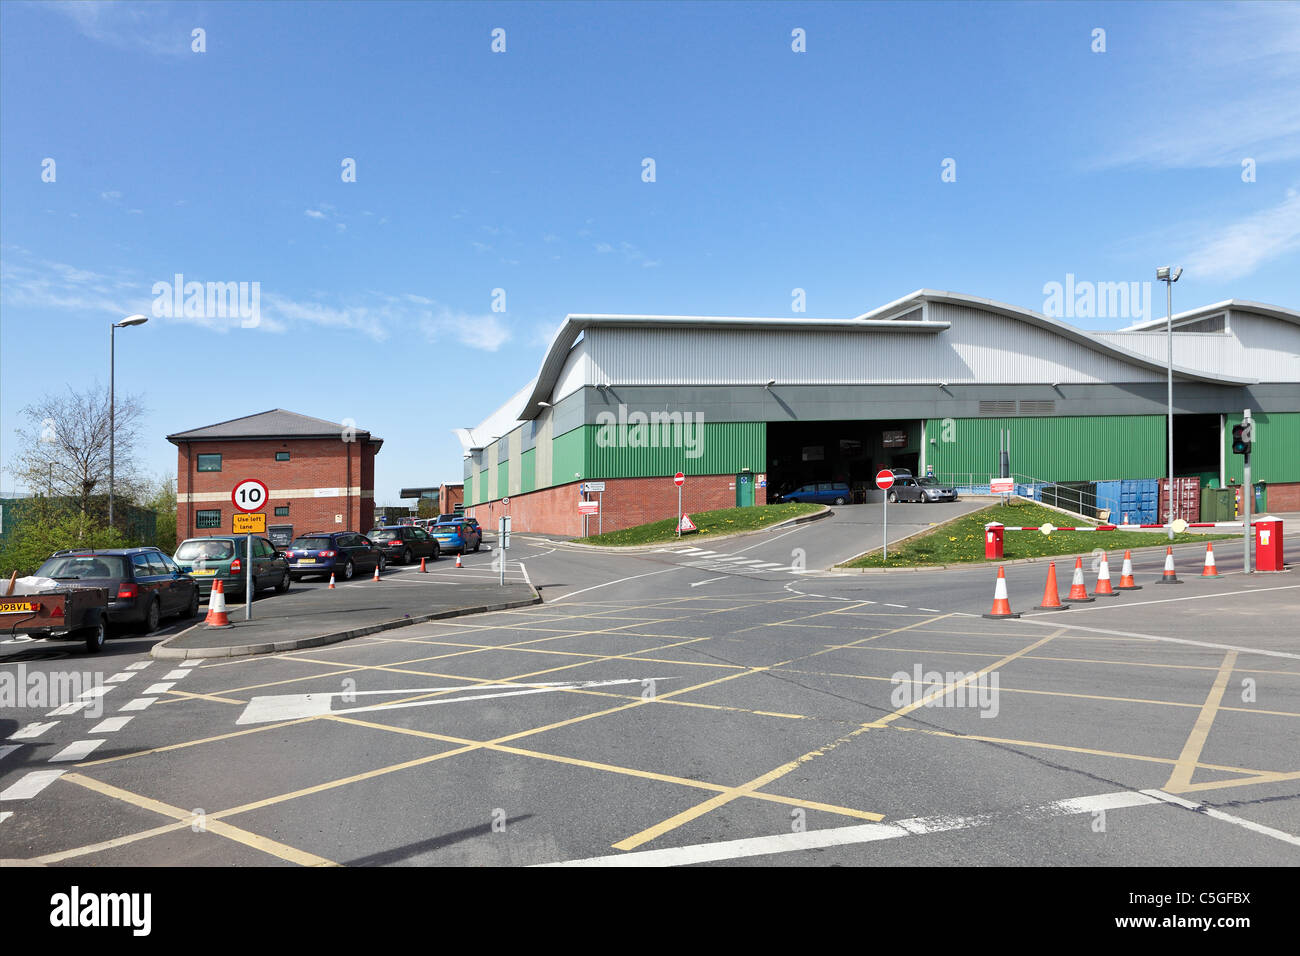 HOUSEHOLD RECYCLING CENTRE, run by Shropshire Council this  particular centre at Battlefield Enterprise Park, Shrewsbury. - Stock Image